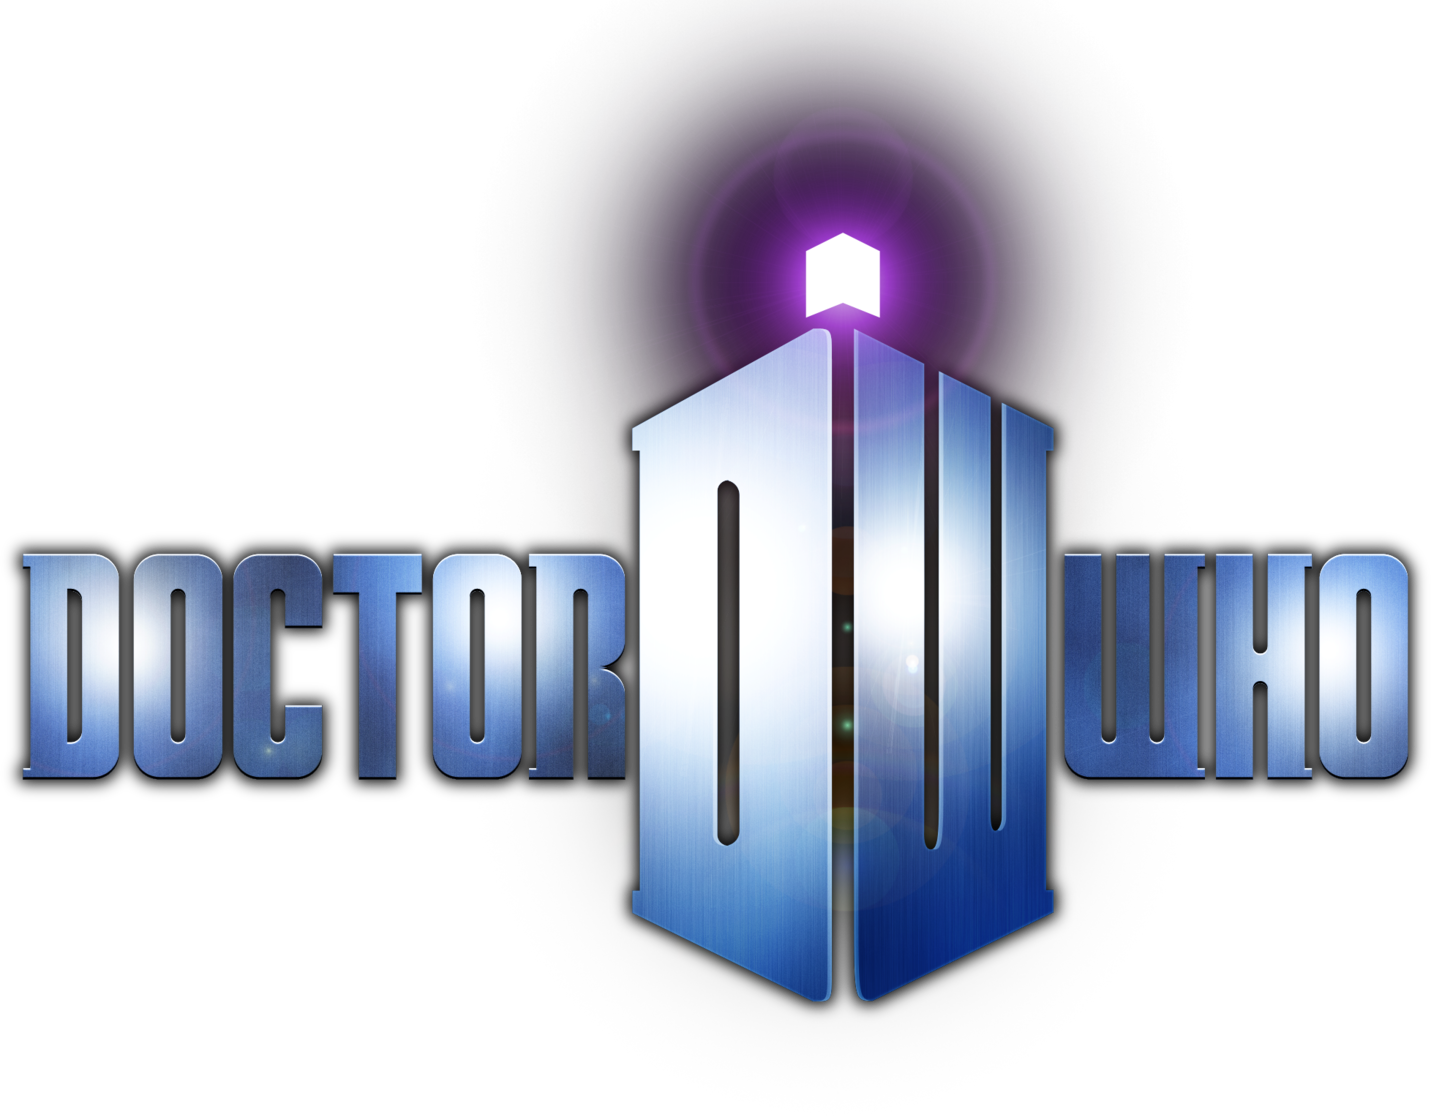 Clip Art Doctor Who Clipart tardis clip art all doctor who logos free cliparts that you can download to you